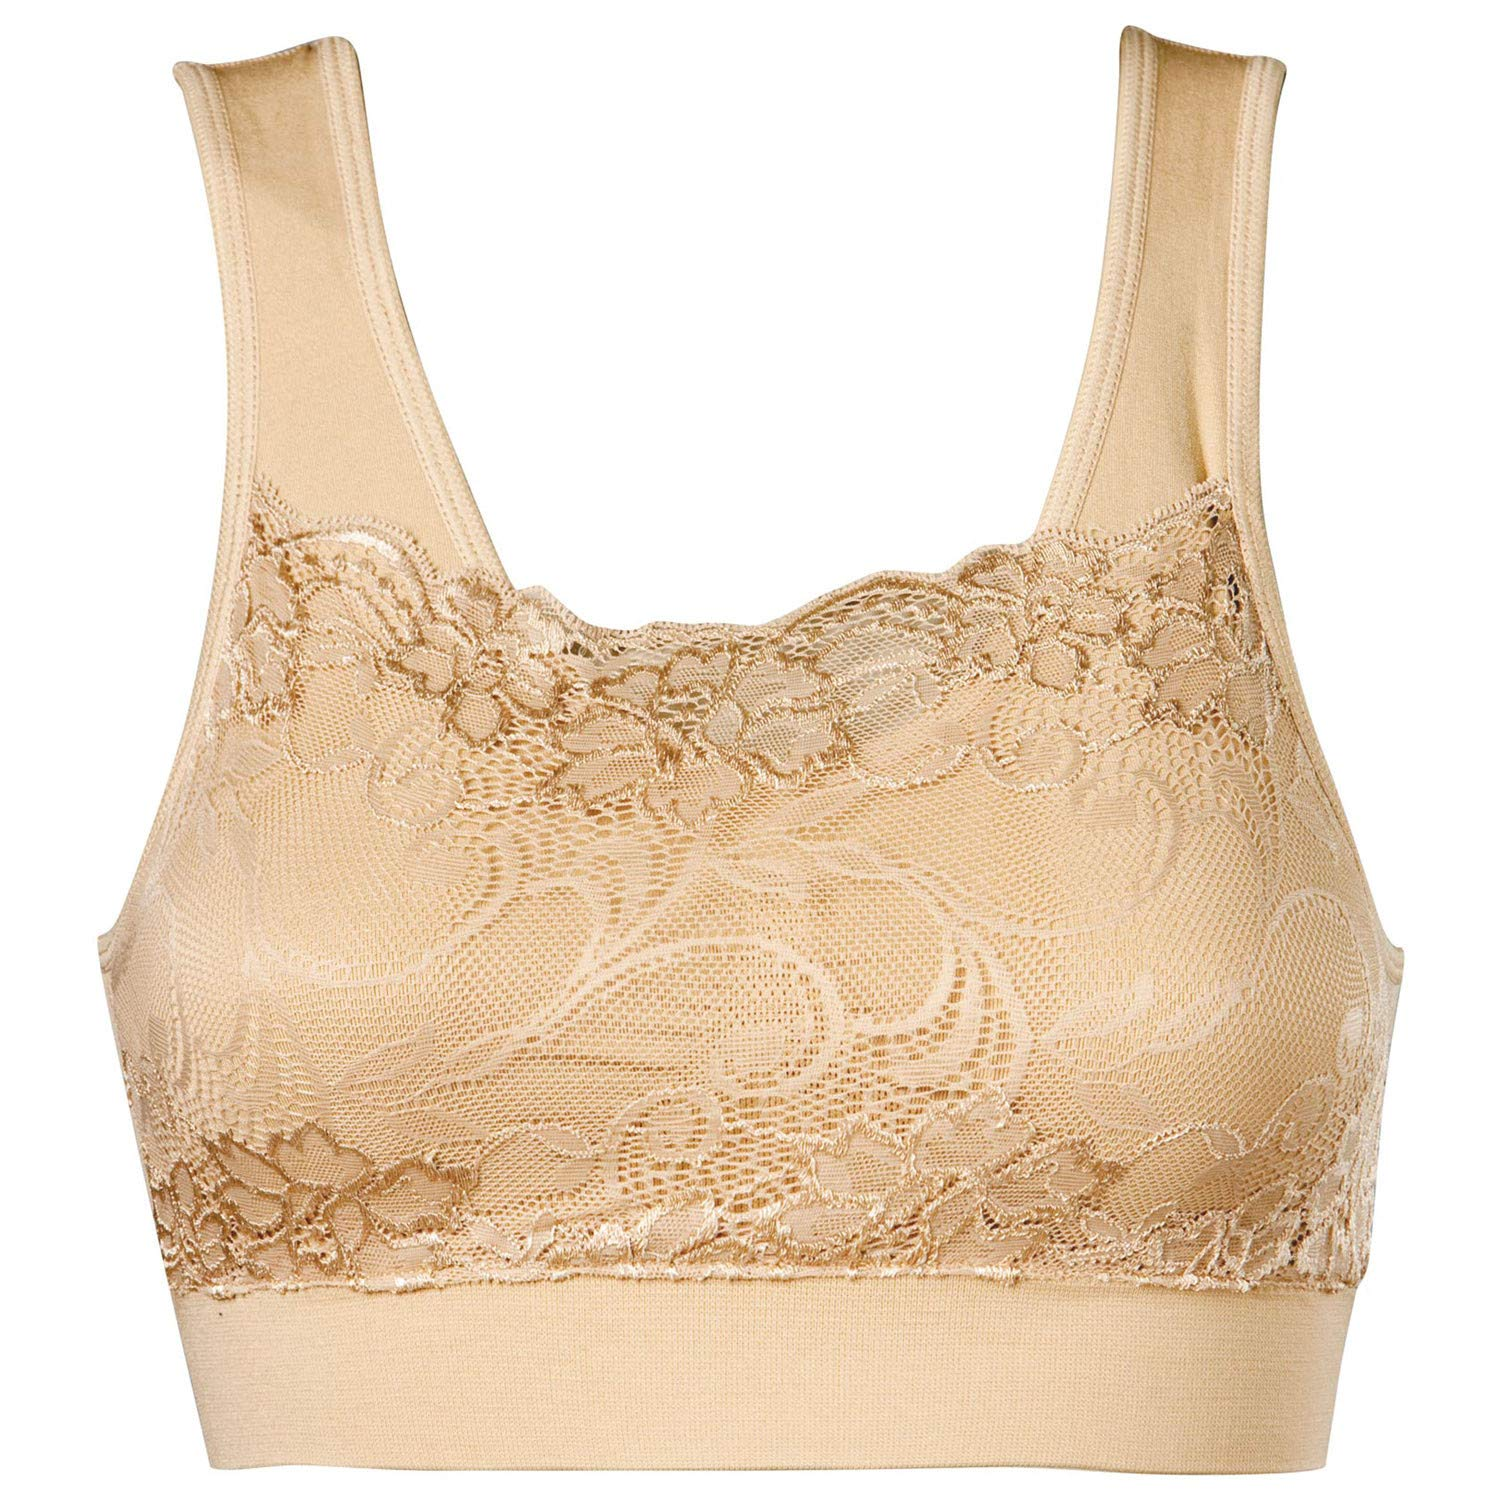 Genie(r) Bra Women's Milana Bra with Lace Overlay and Removable Pads - Nude